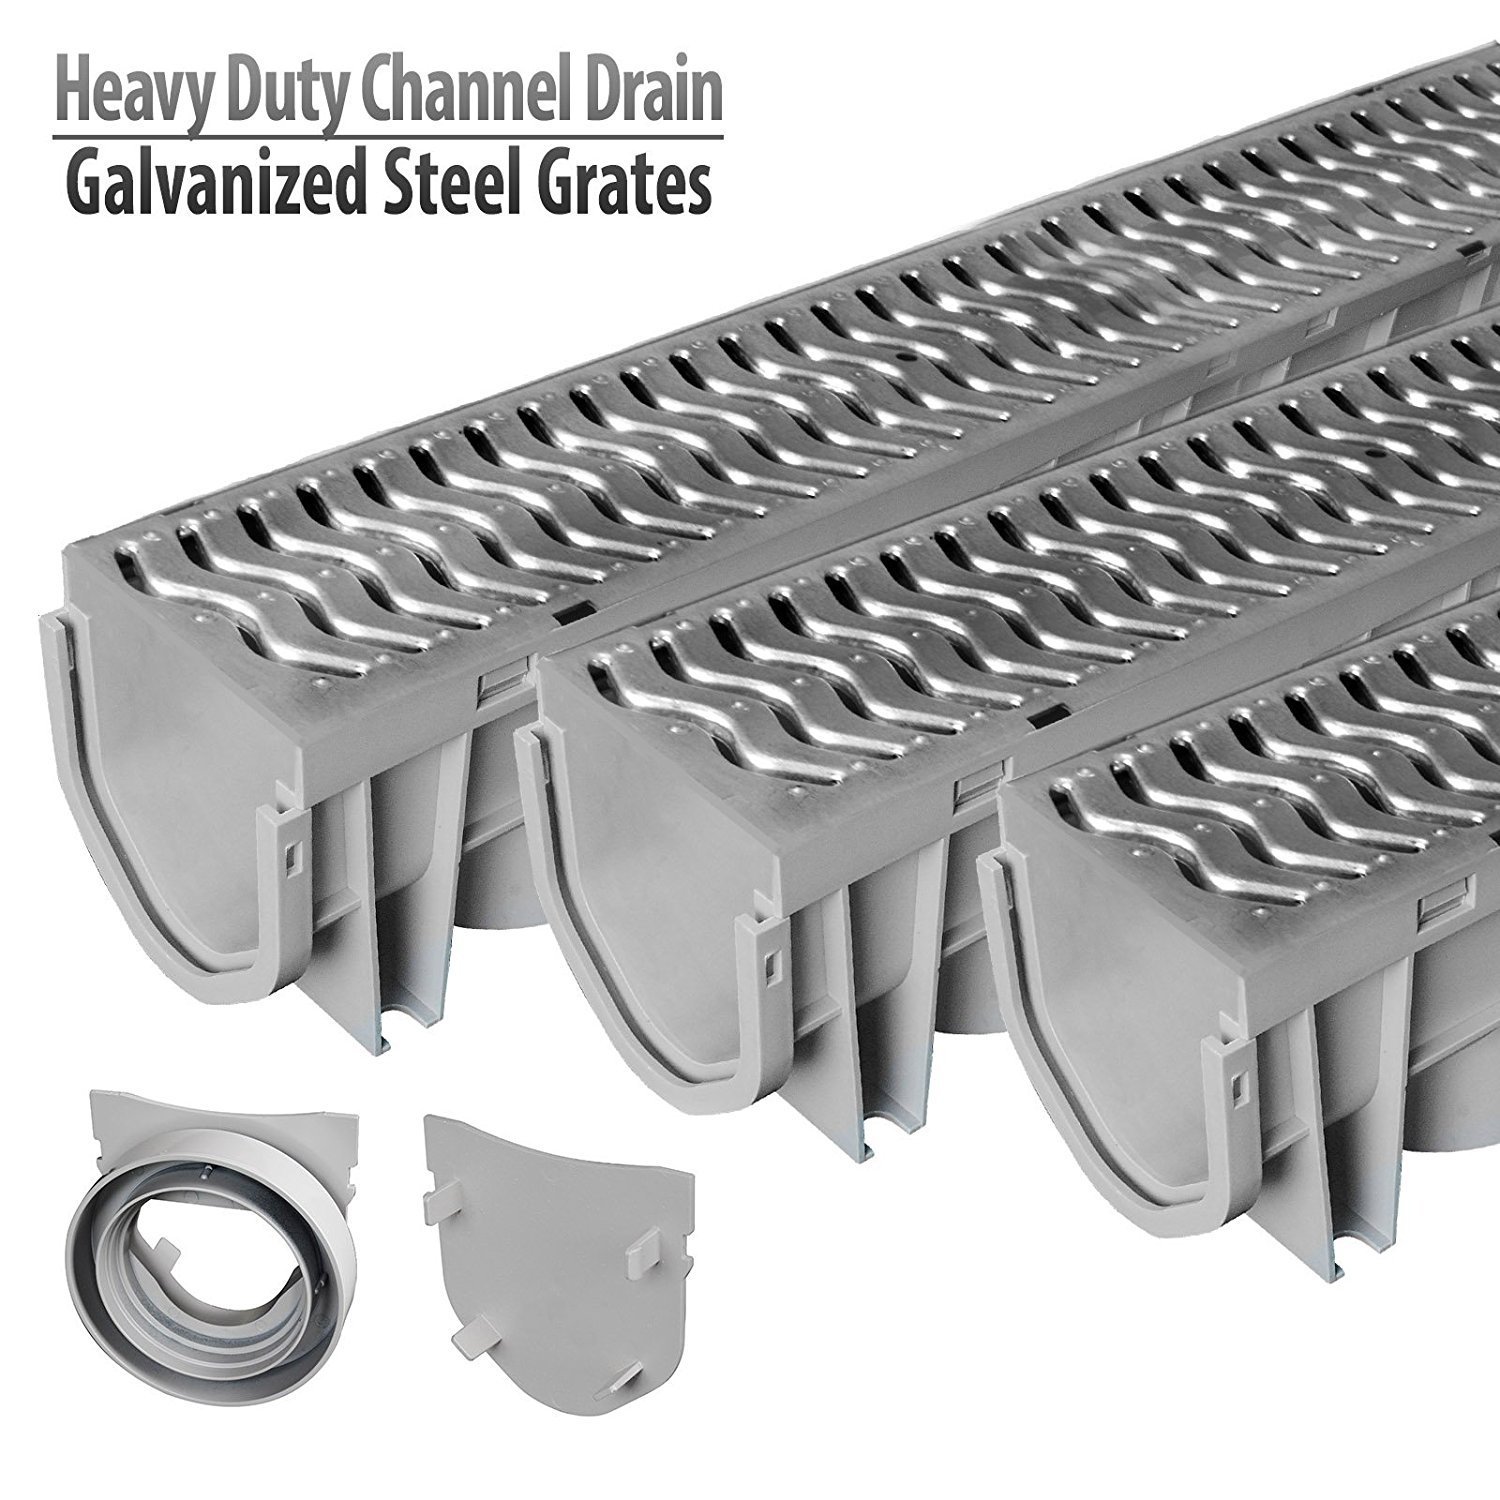 Source 1 Drainage Trench & Driveway Channel Drain with Galvanized